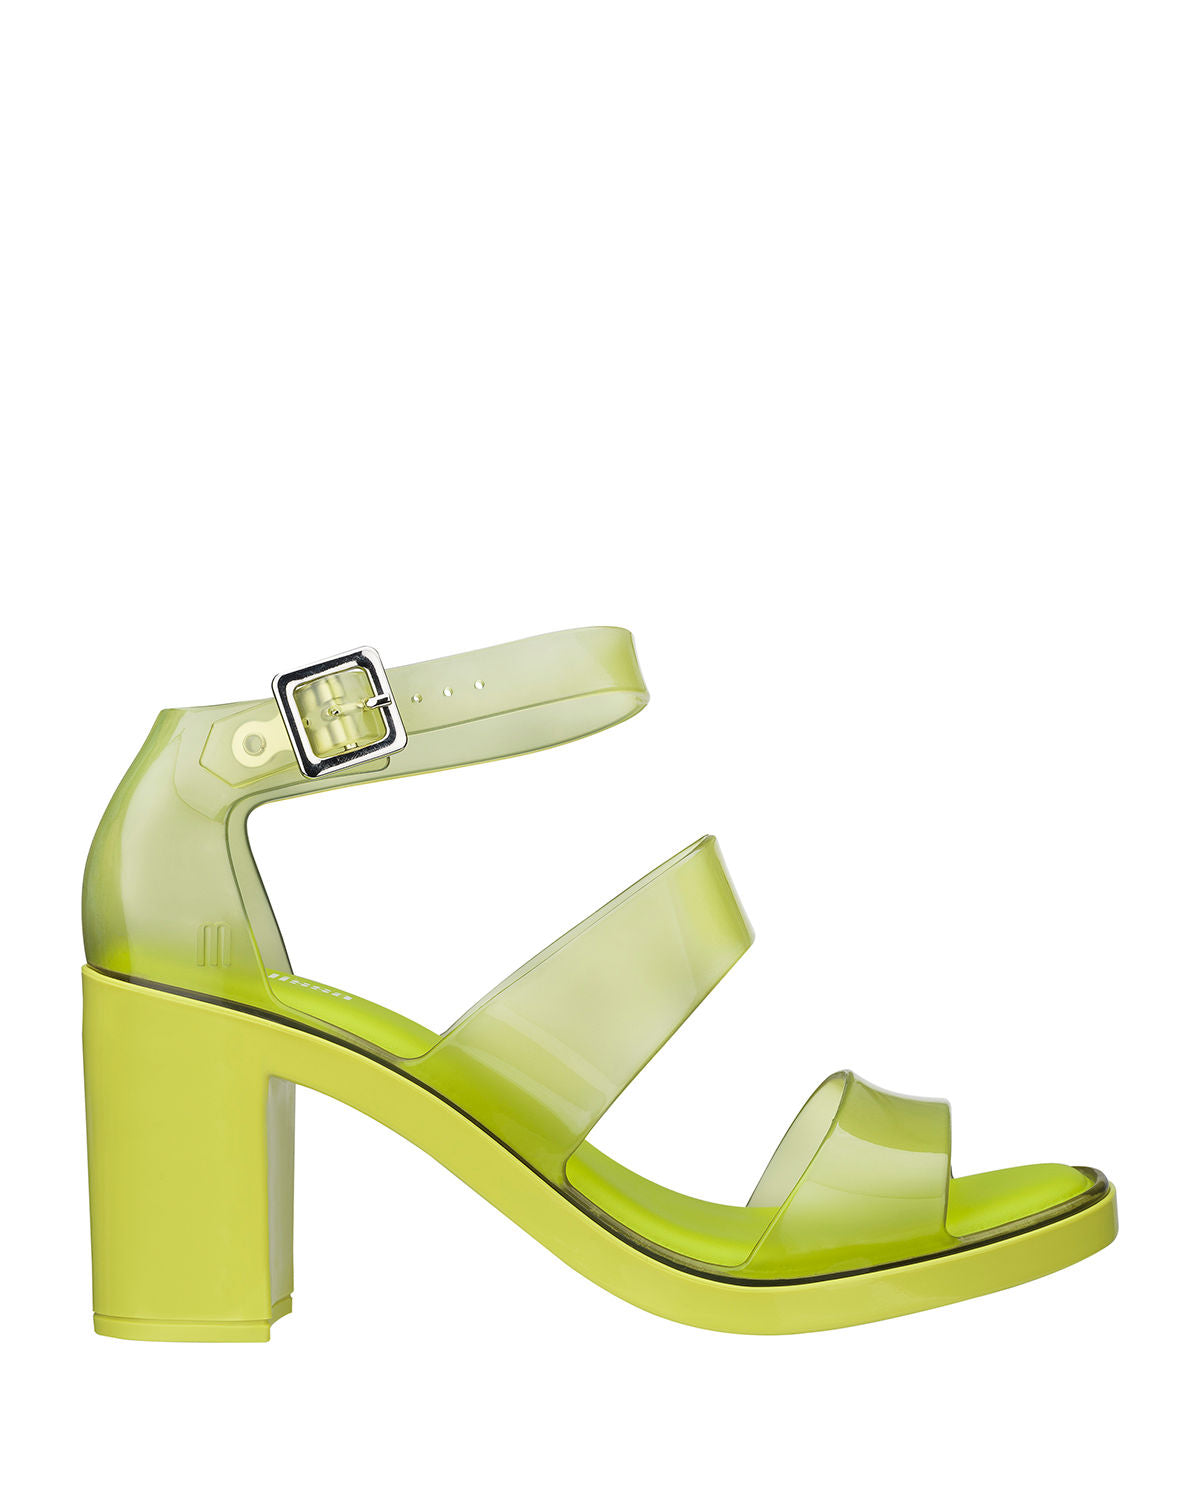 This translucent lime sandal features a chunky block heel and two 100% recyclable plastic straps and an adjustable ankle strap..At Shoe Be Do in New Orleans,la.